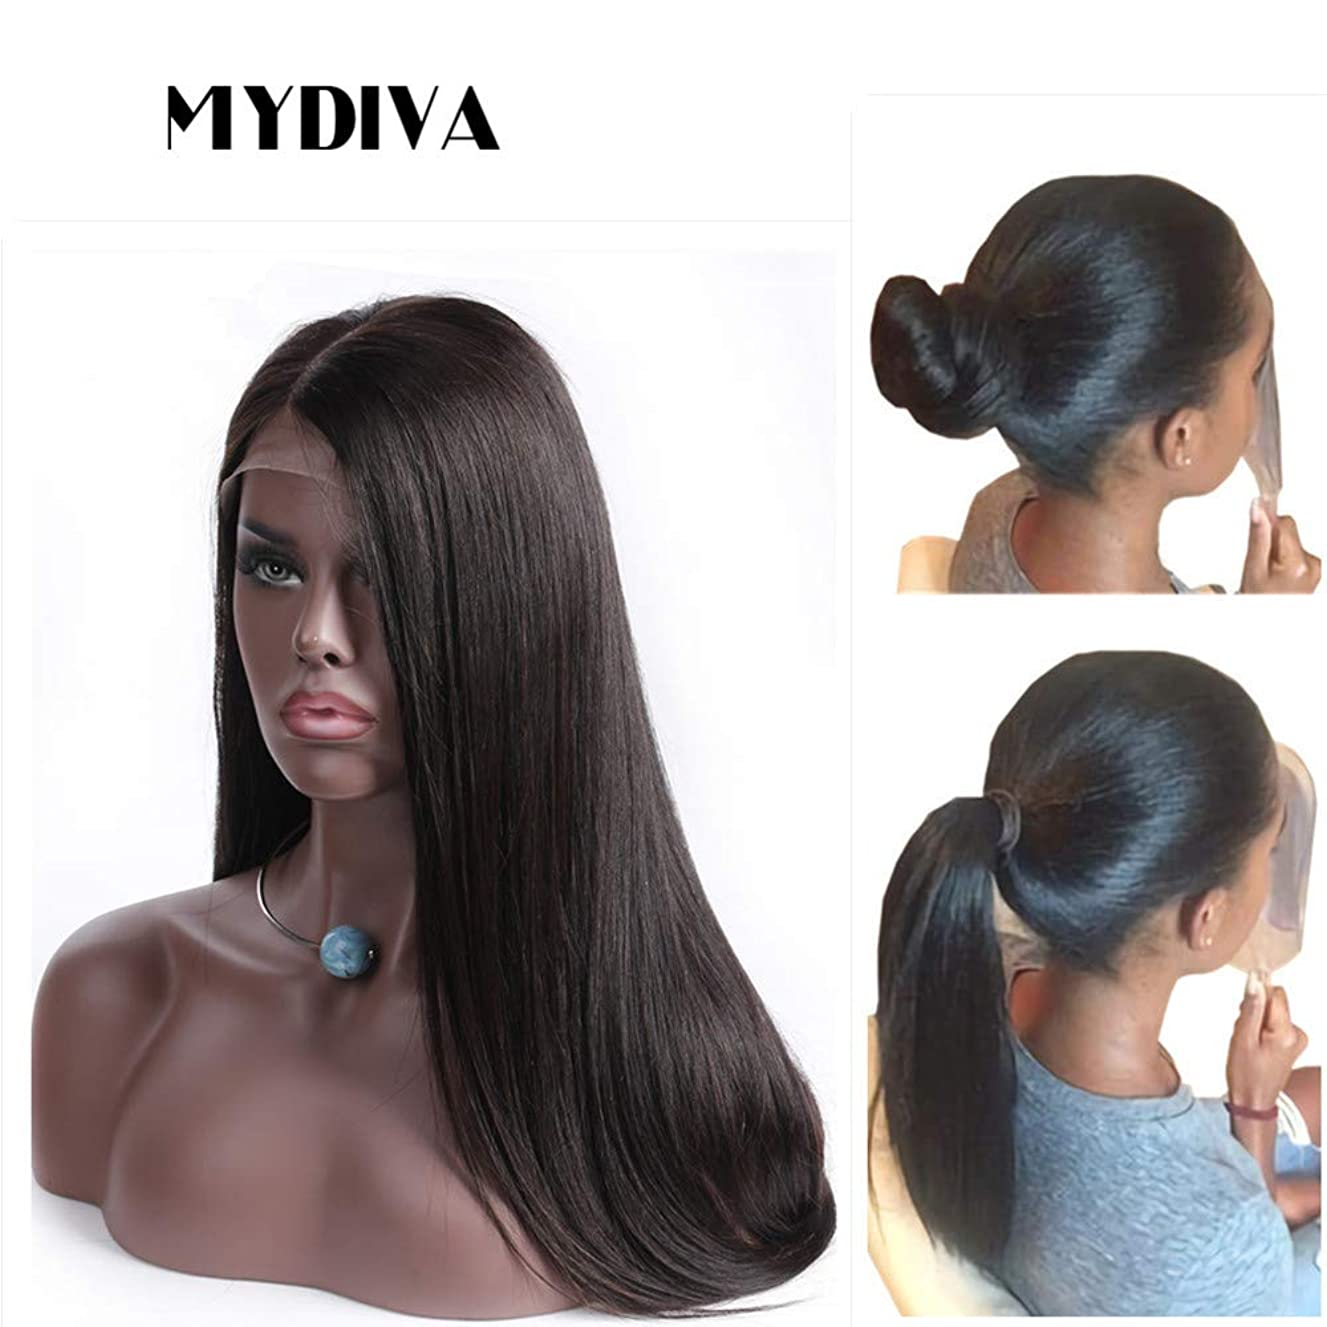 Mydiva 13x4 Lace Front Human Hair Wigs For Black Woman Middle Part 130% Density Lace Frontal Wigs Brazilian Straight Virgin Hair (18)